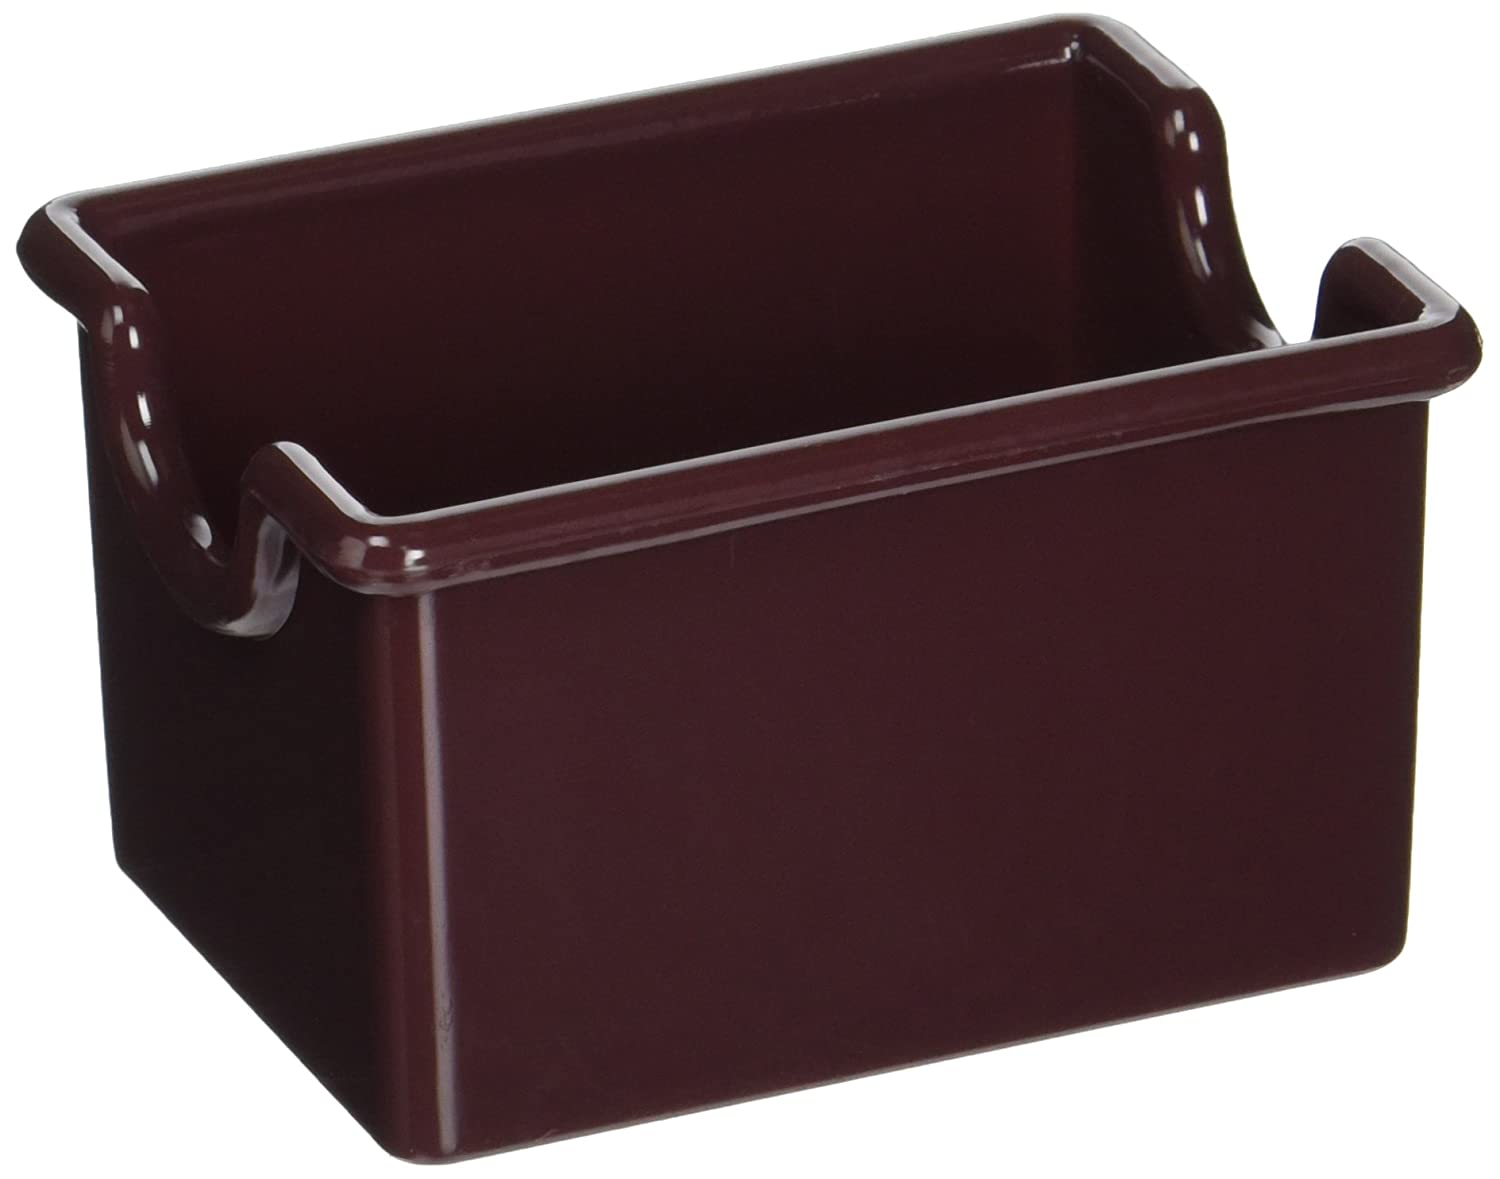 New Star Foodservice 28454 Plastic Sugar Packet Holder, Brown, Set of 12